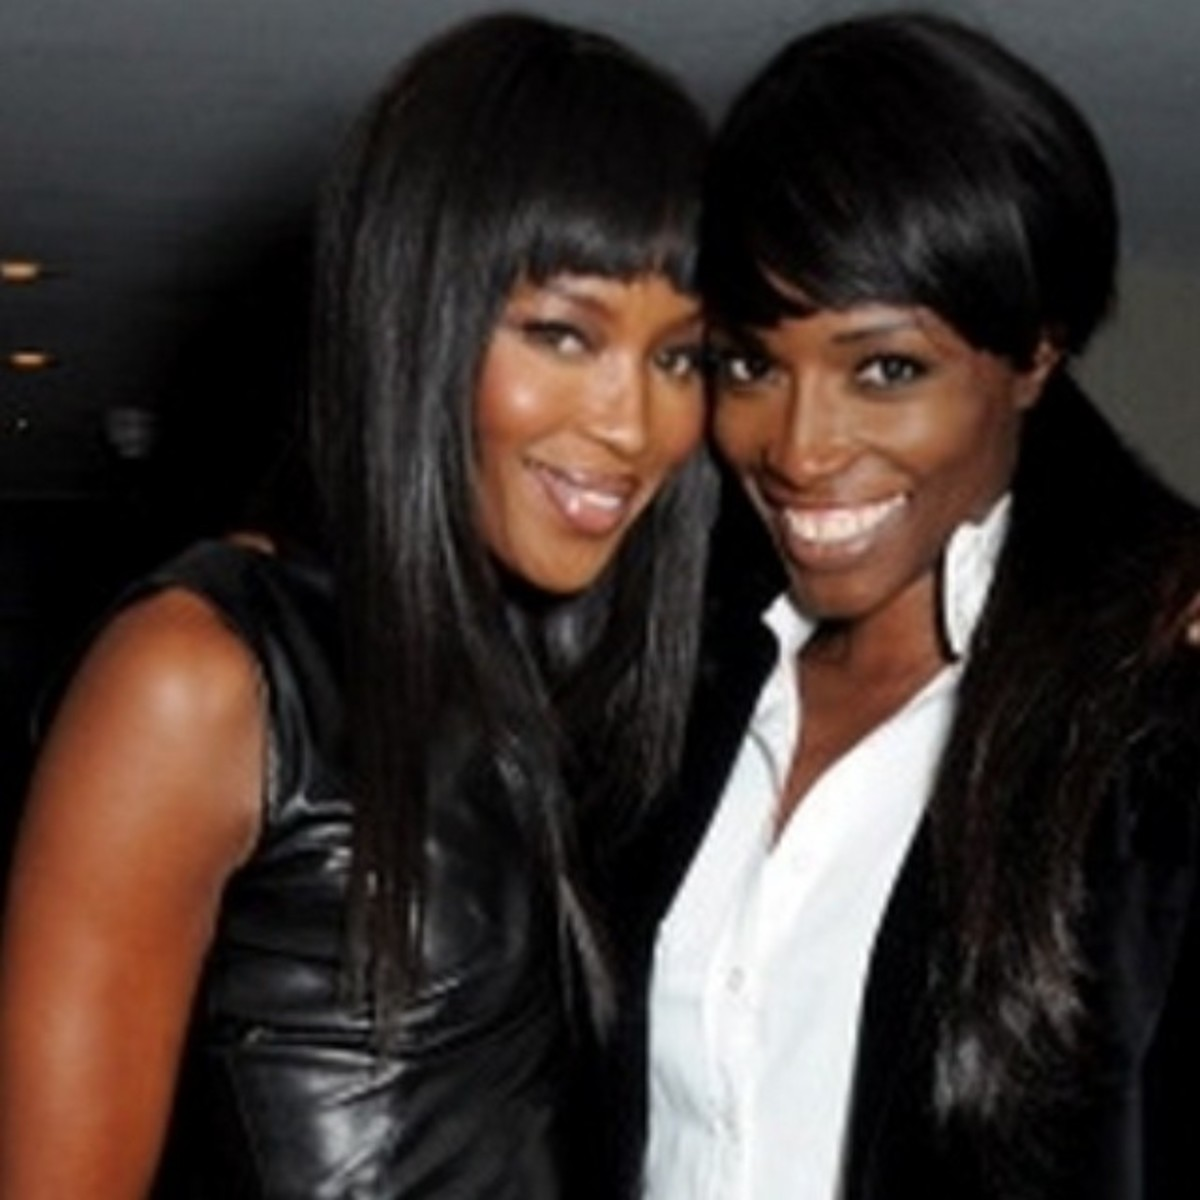 @lorrainepascale: My old work mate @naomicampbell and me at a sky living event last night